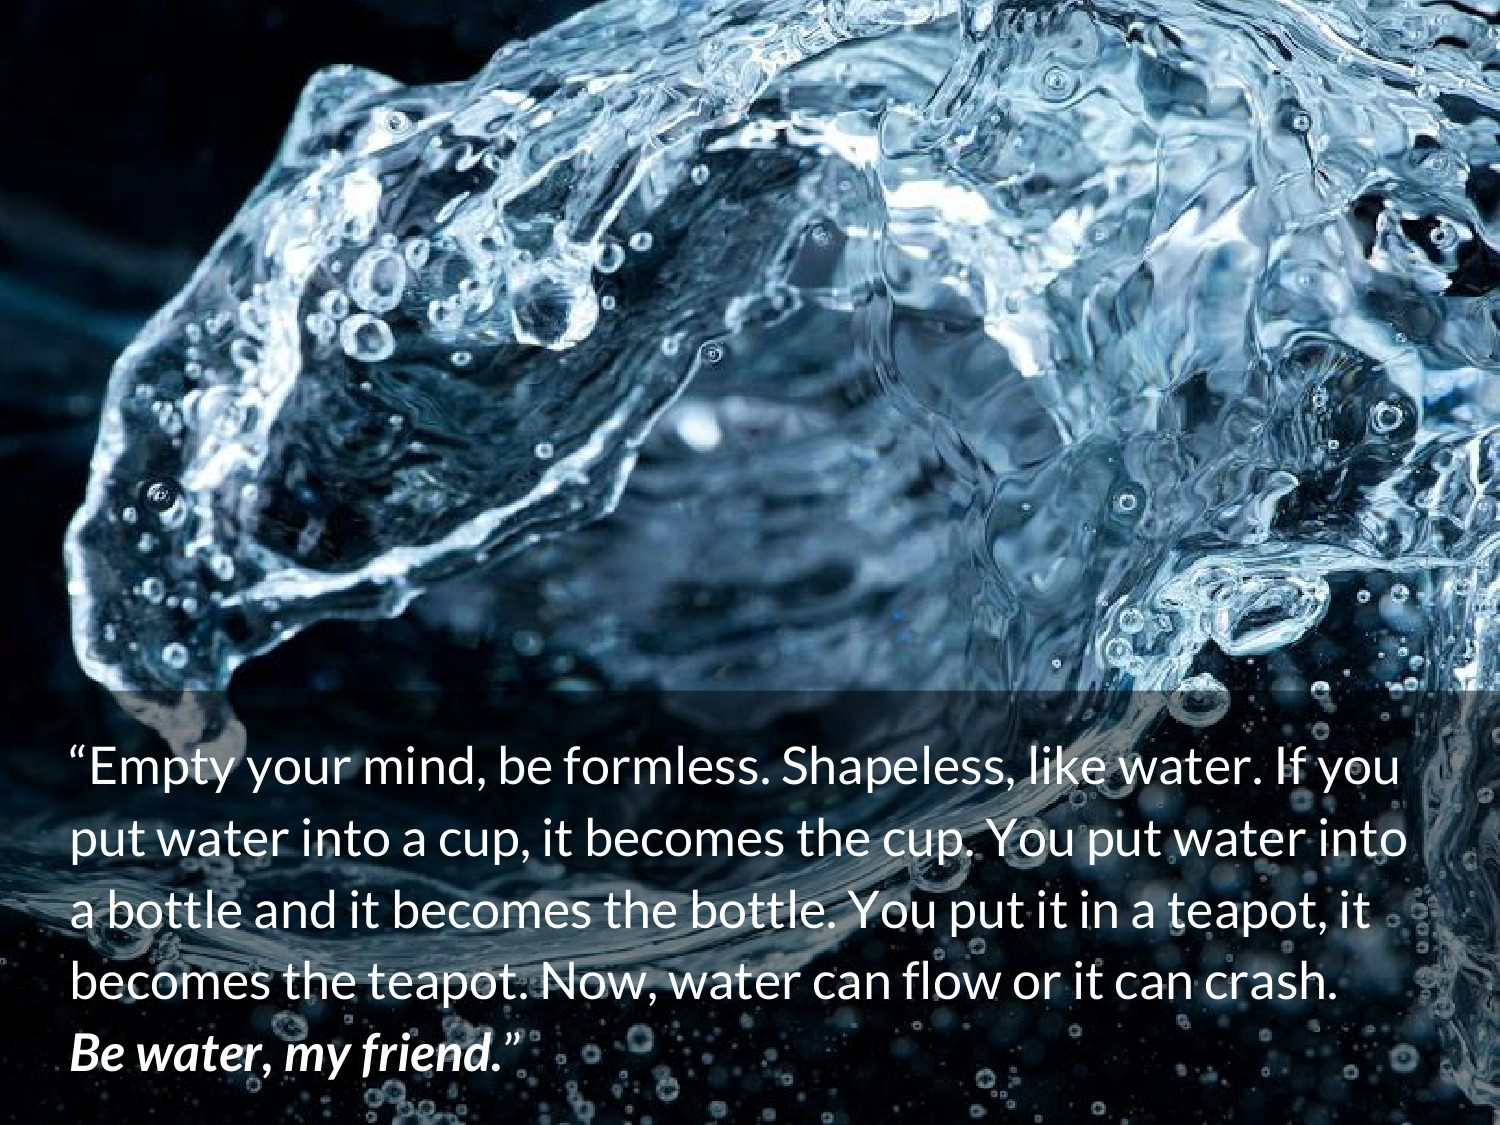 bruce-lee-quote-on-water